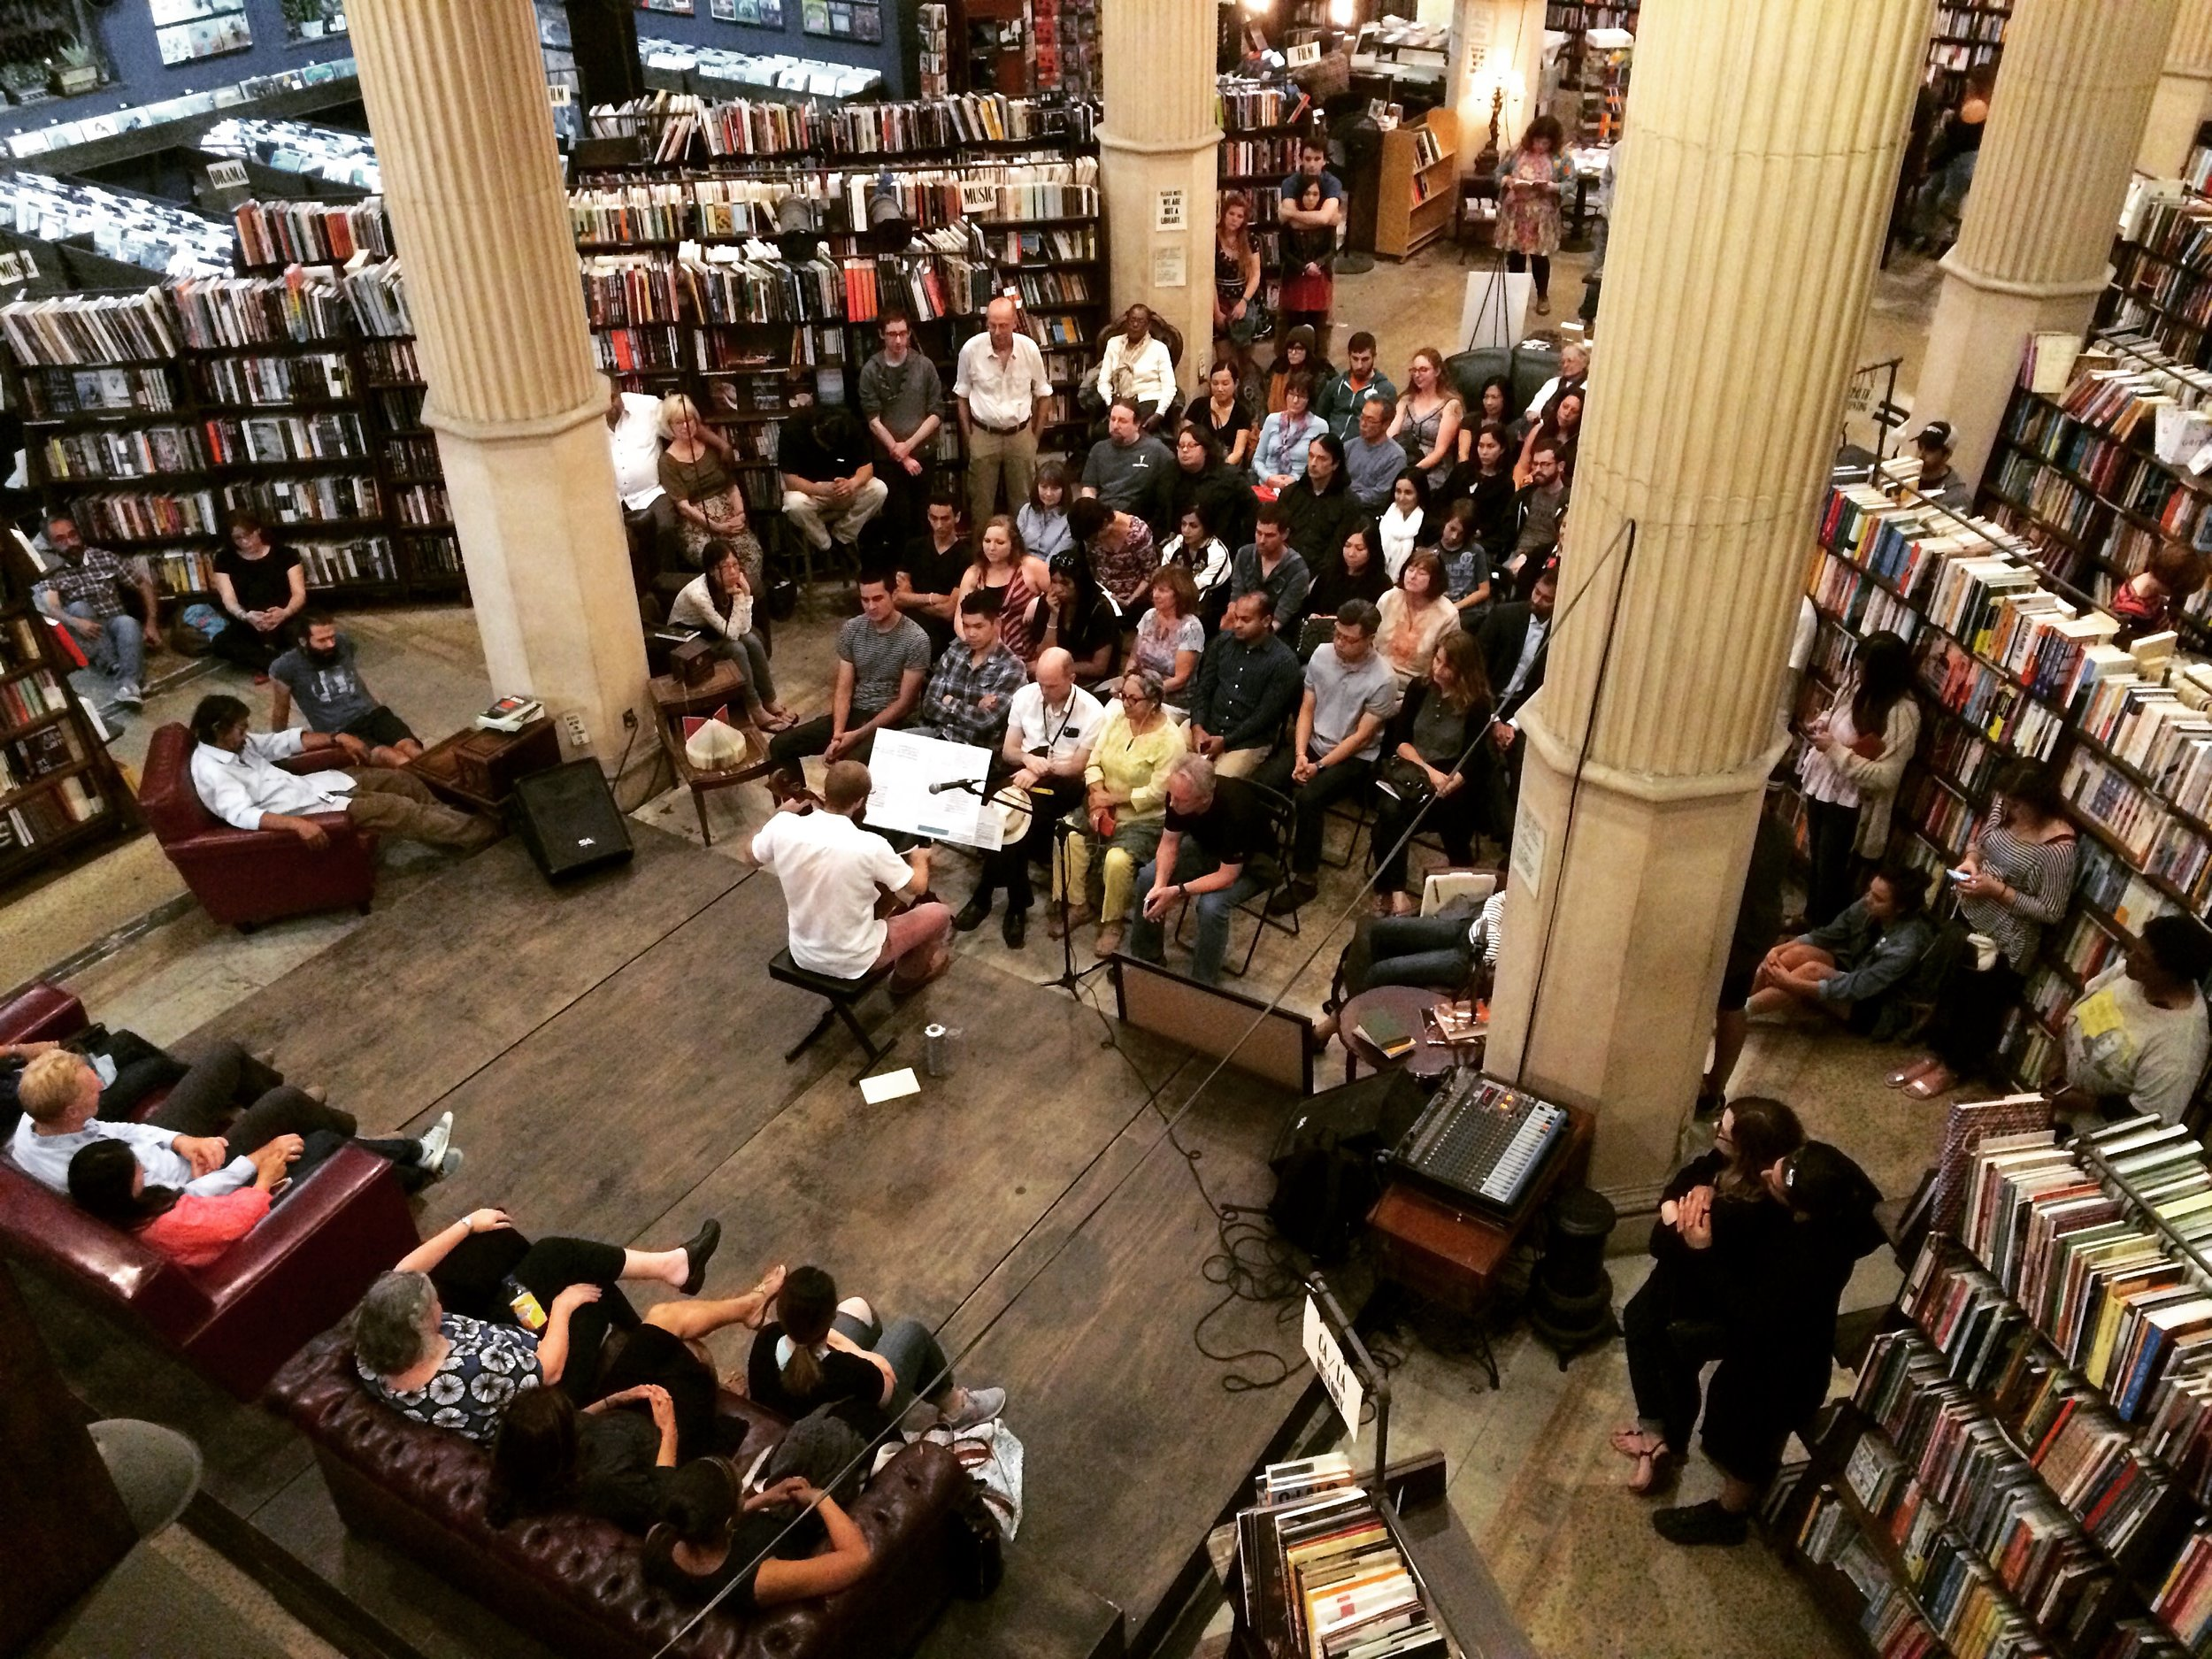 The Bach Reader, at the Last Bookstore (Los Angeles, CA)